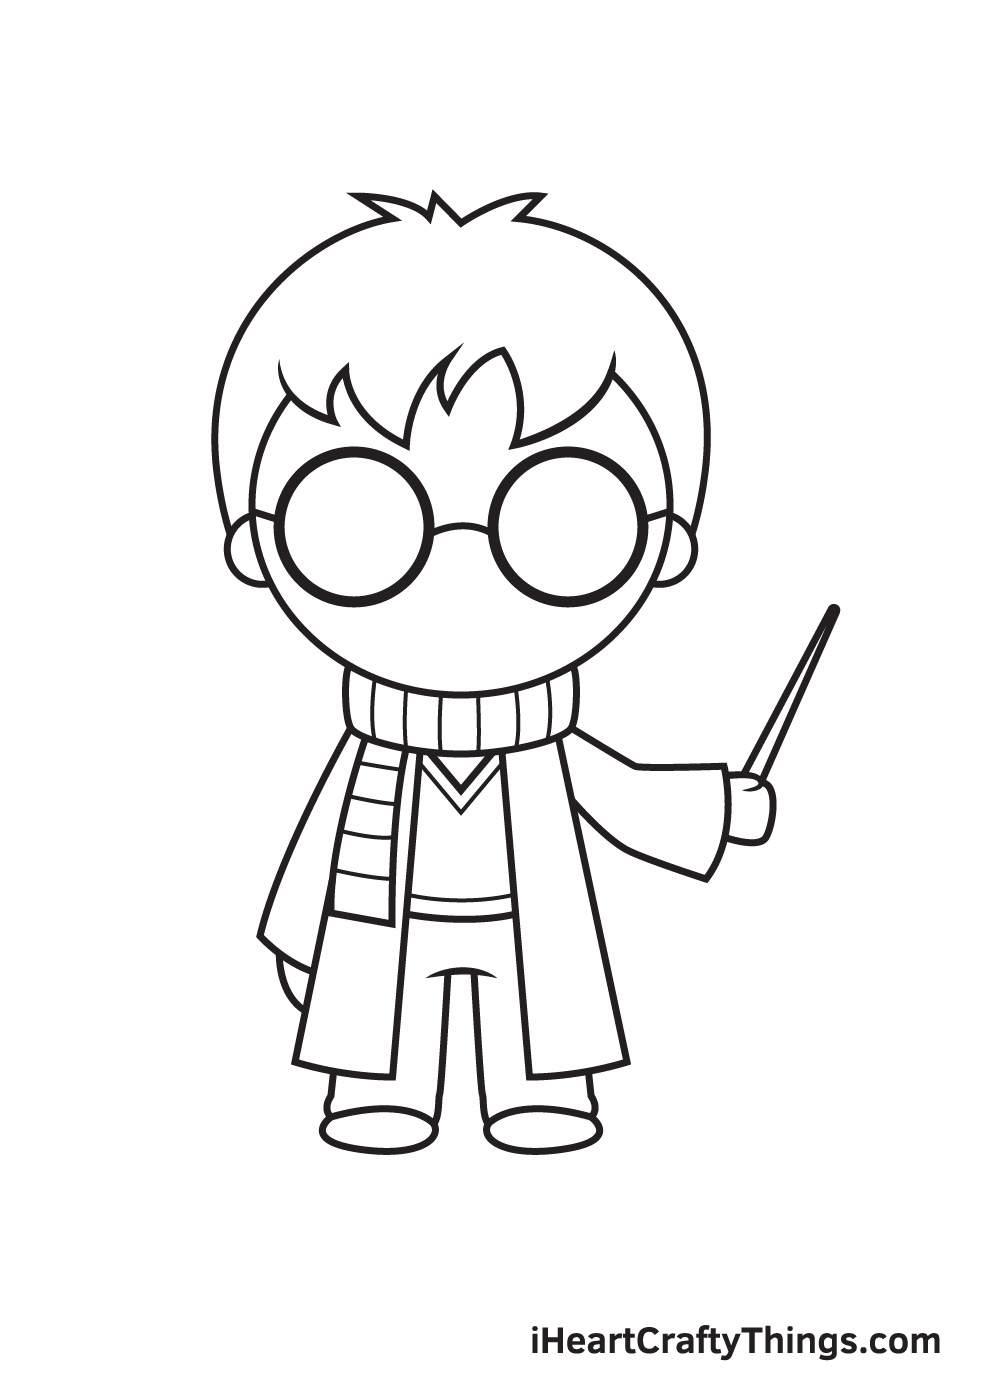 Harry Potter Drawing – Step 8